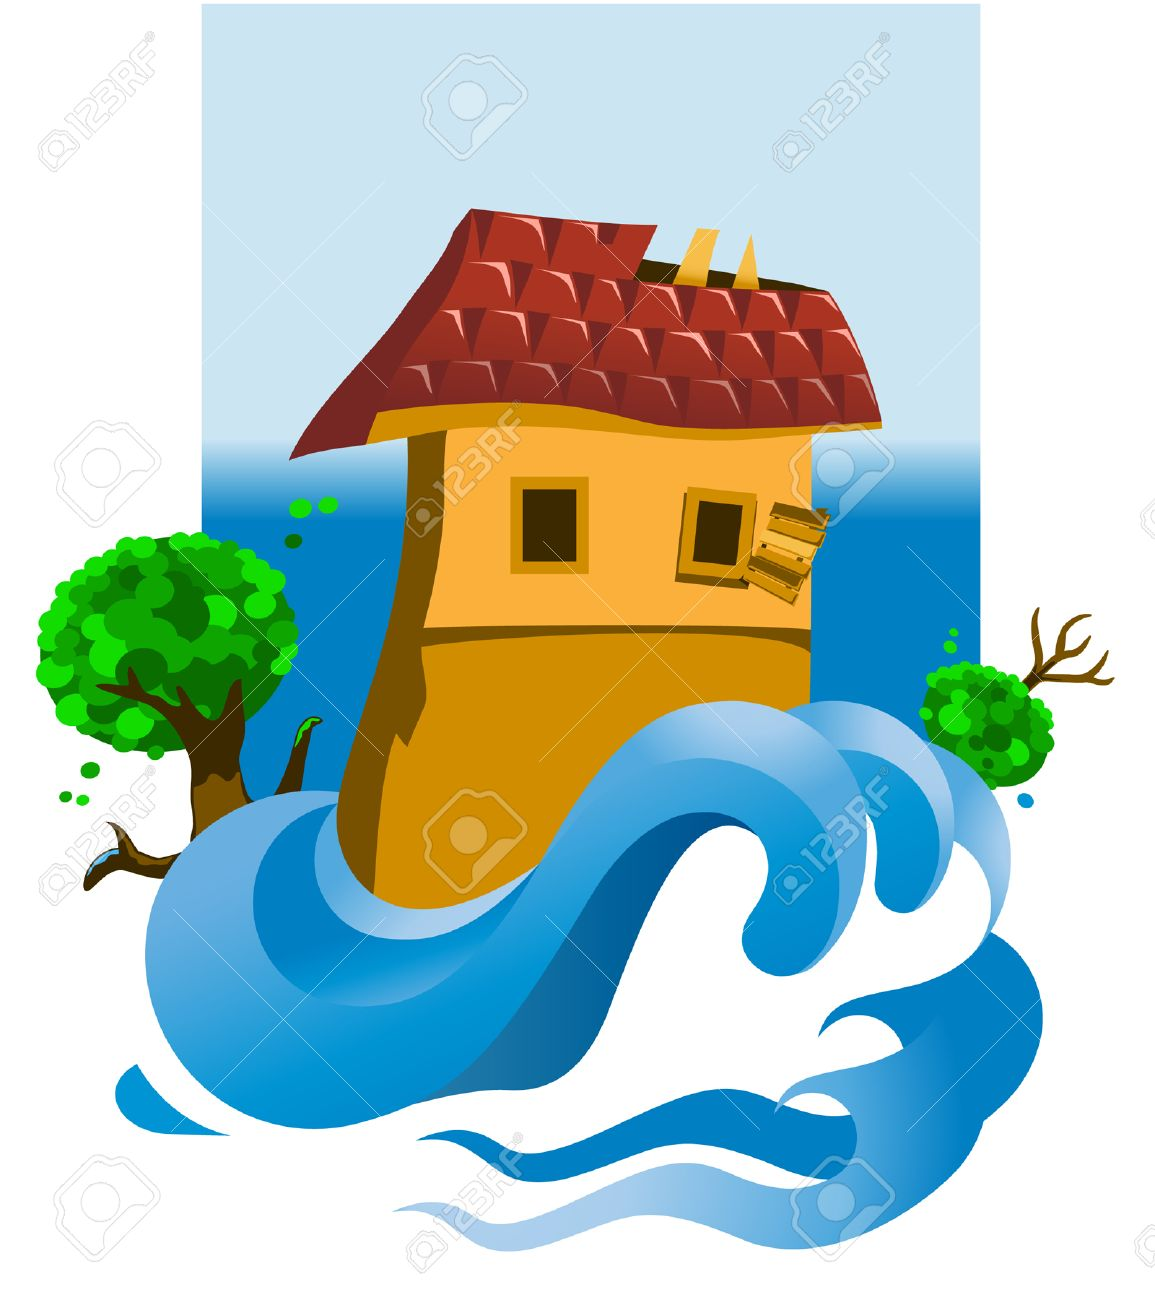 Illustration of a flooded house Stock Vector - 8065156